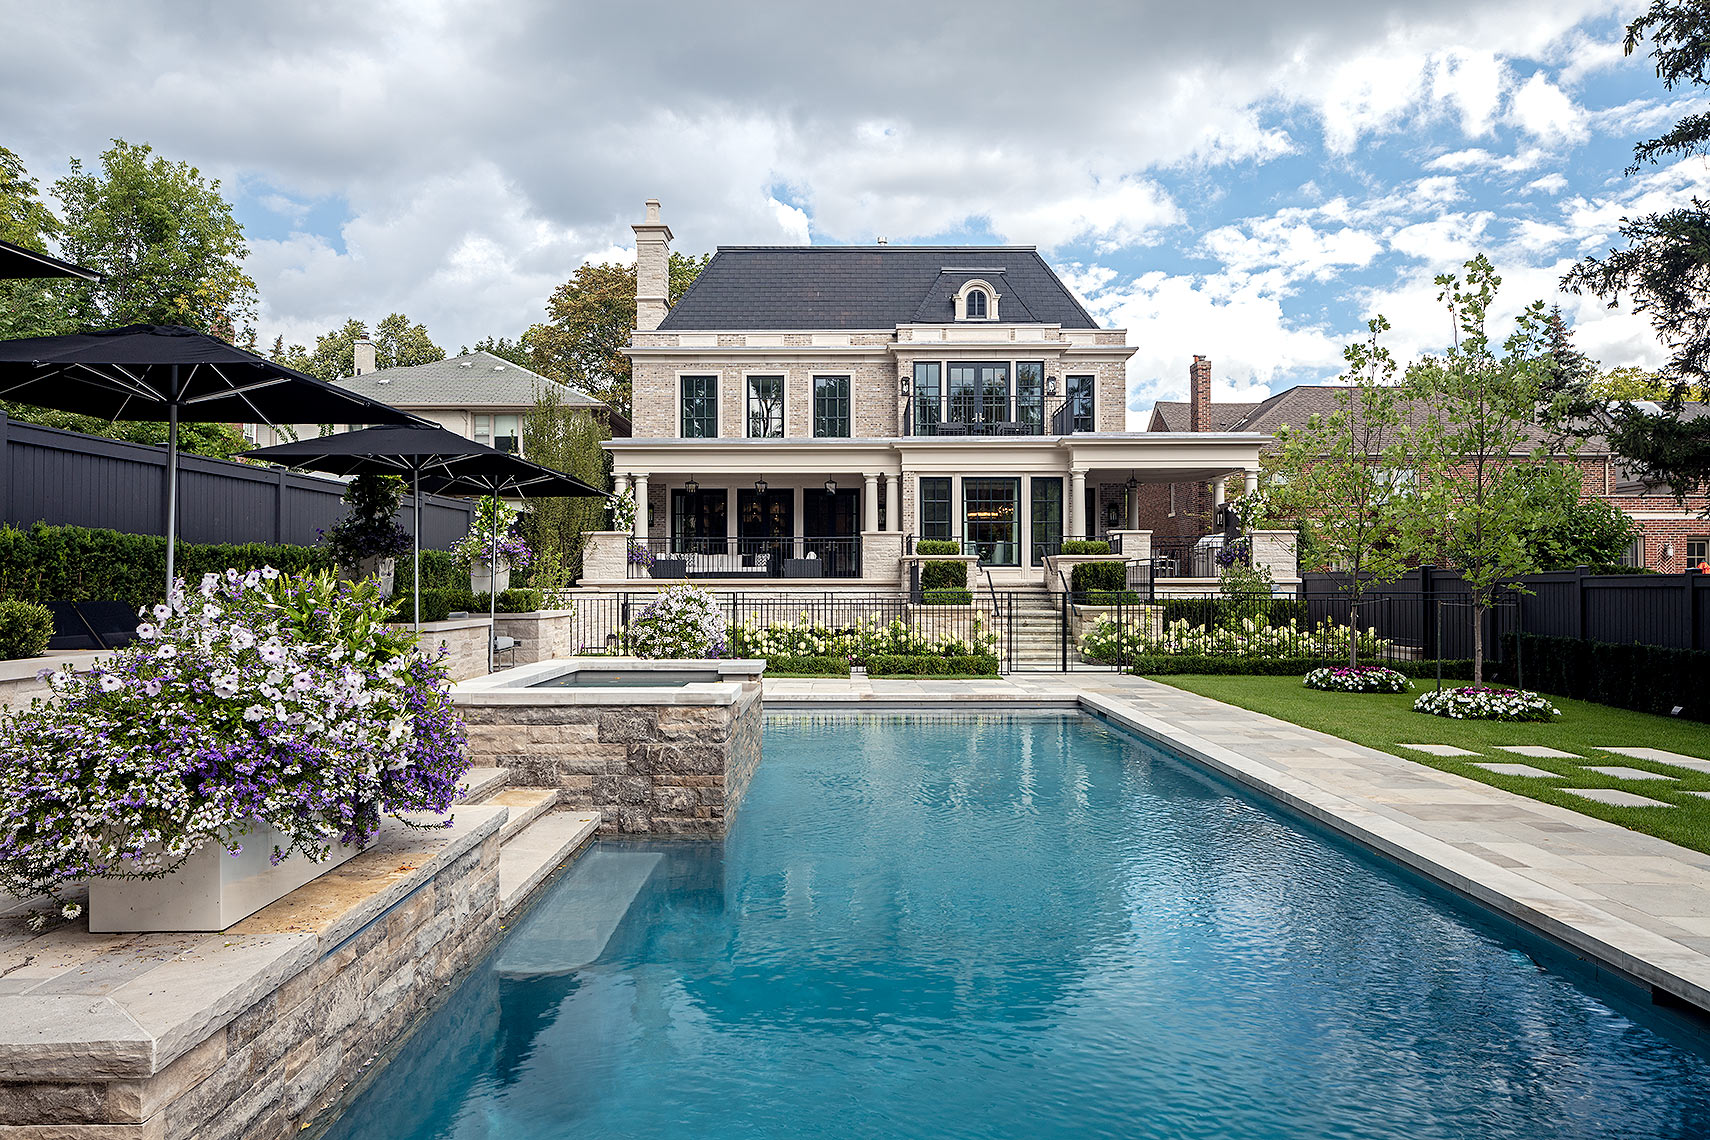 Customhomes-FrenchTransitional-luxuryhomes-3